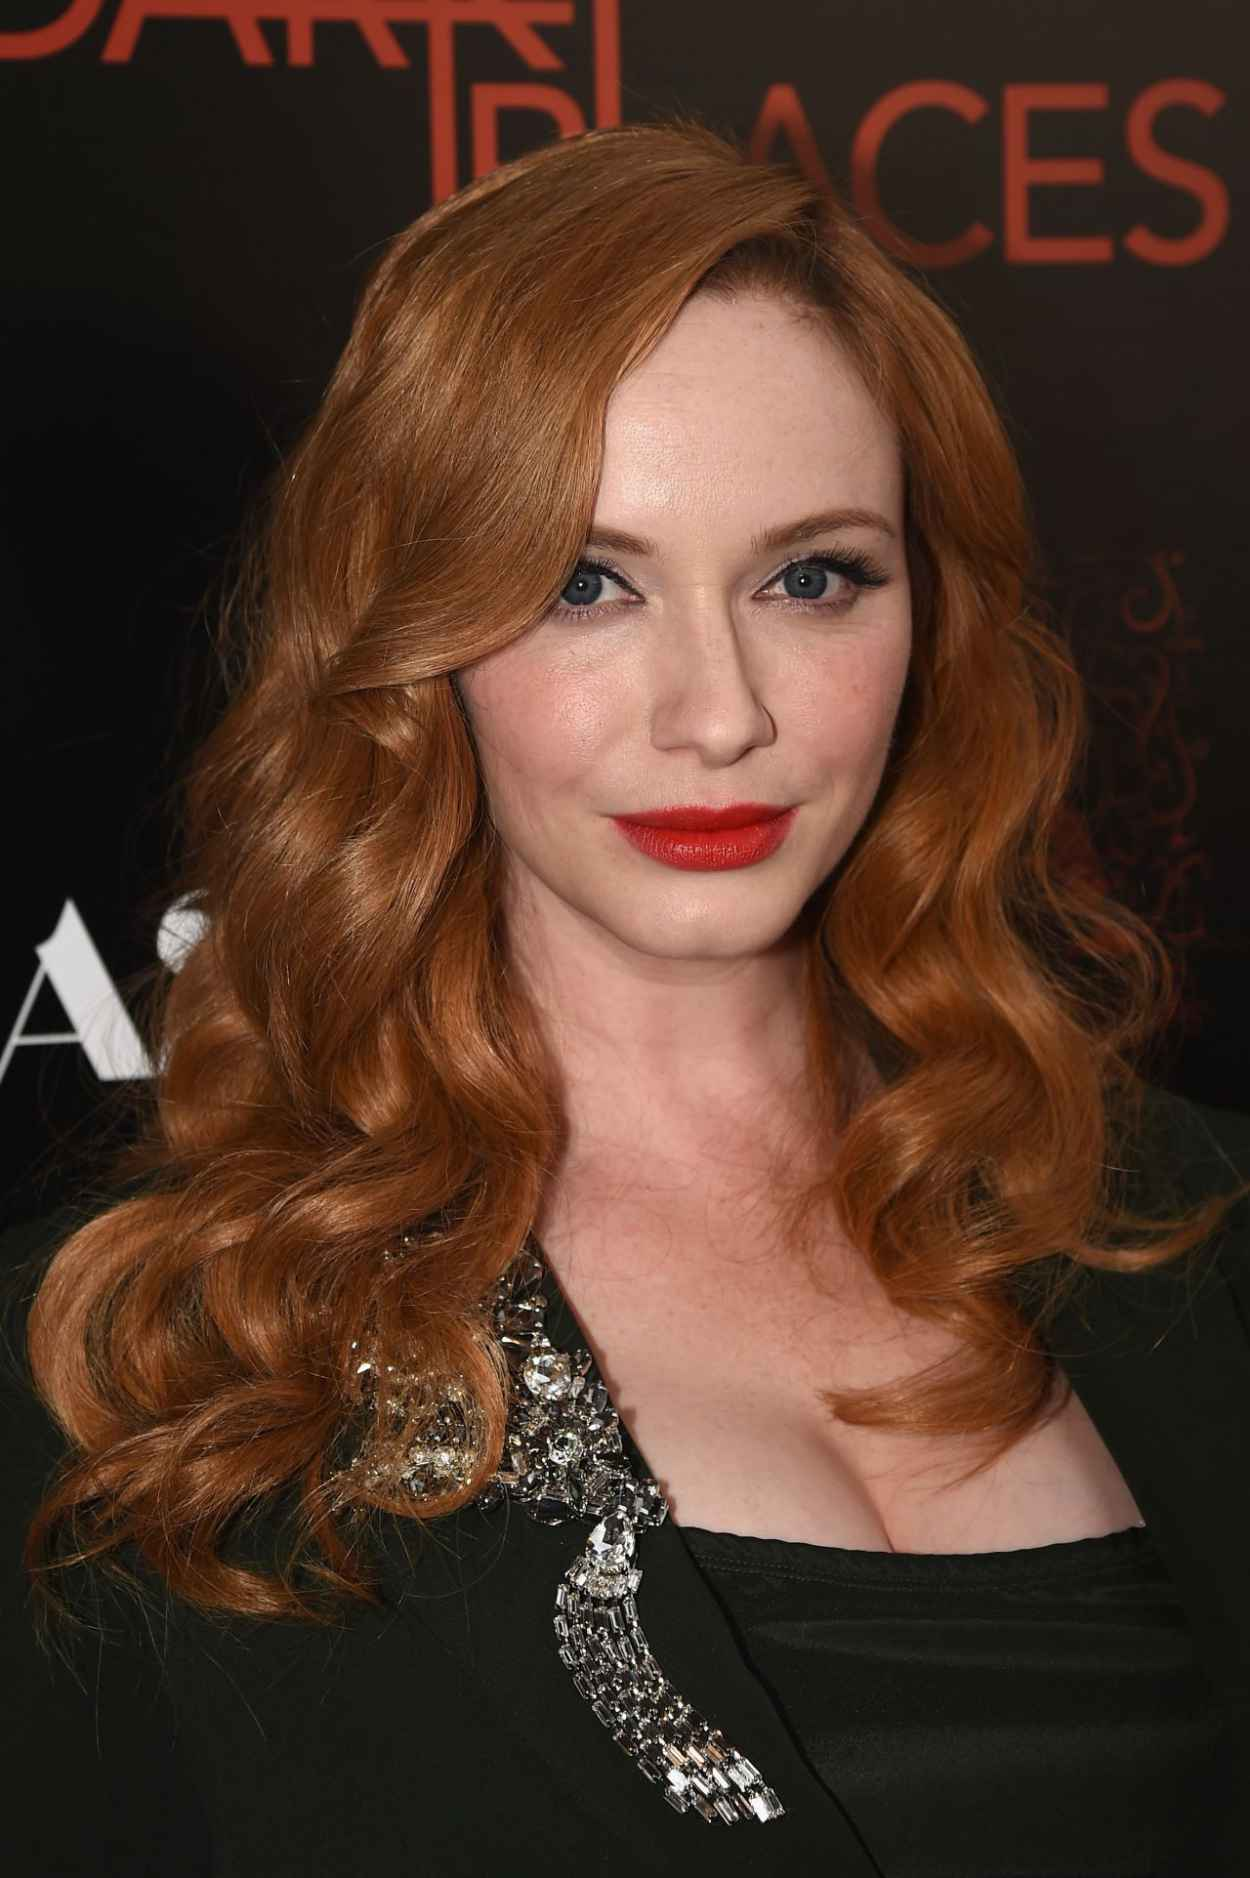 Christina Hendricks - DIRECTV-s Dark Places Premiere in Los Angeles-2